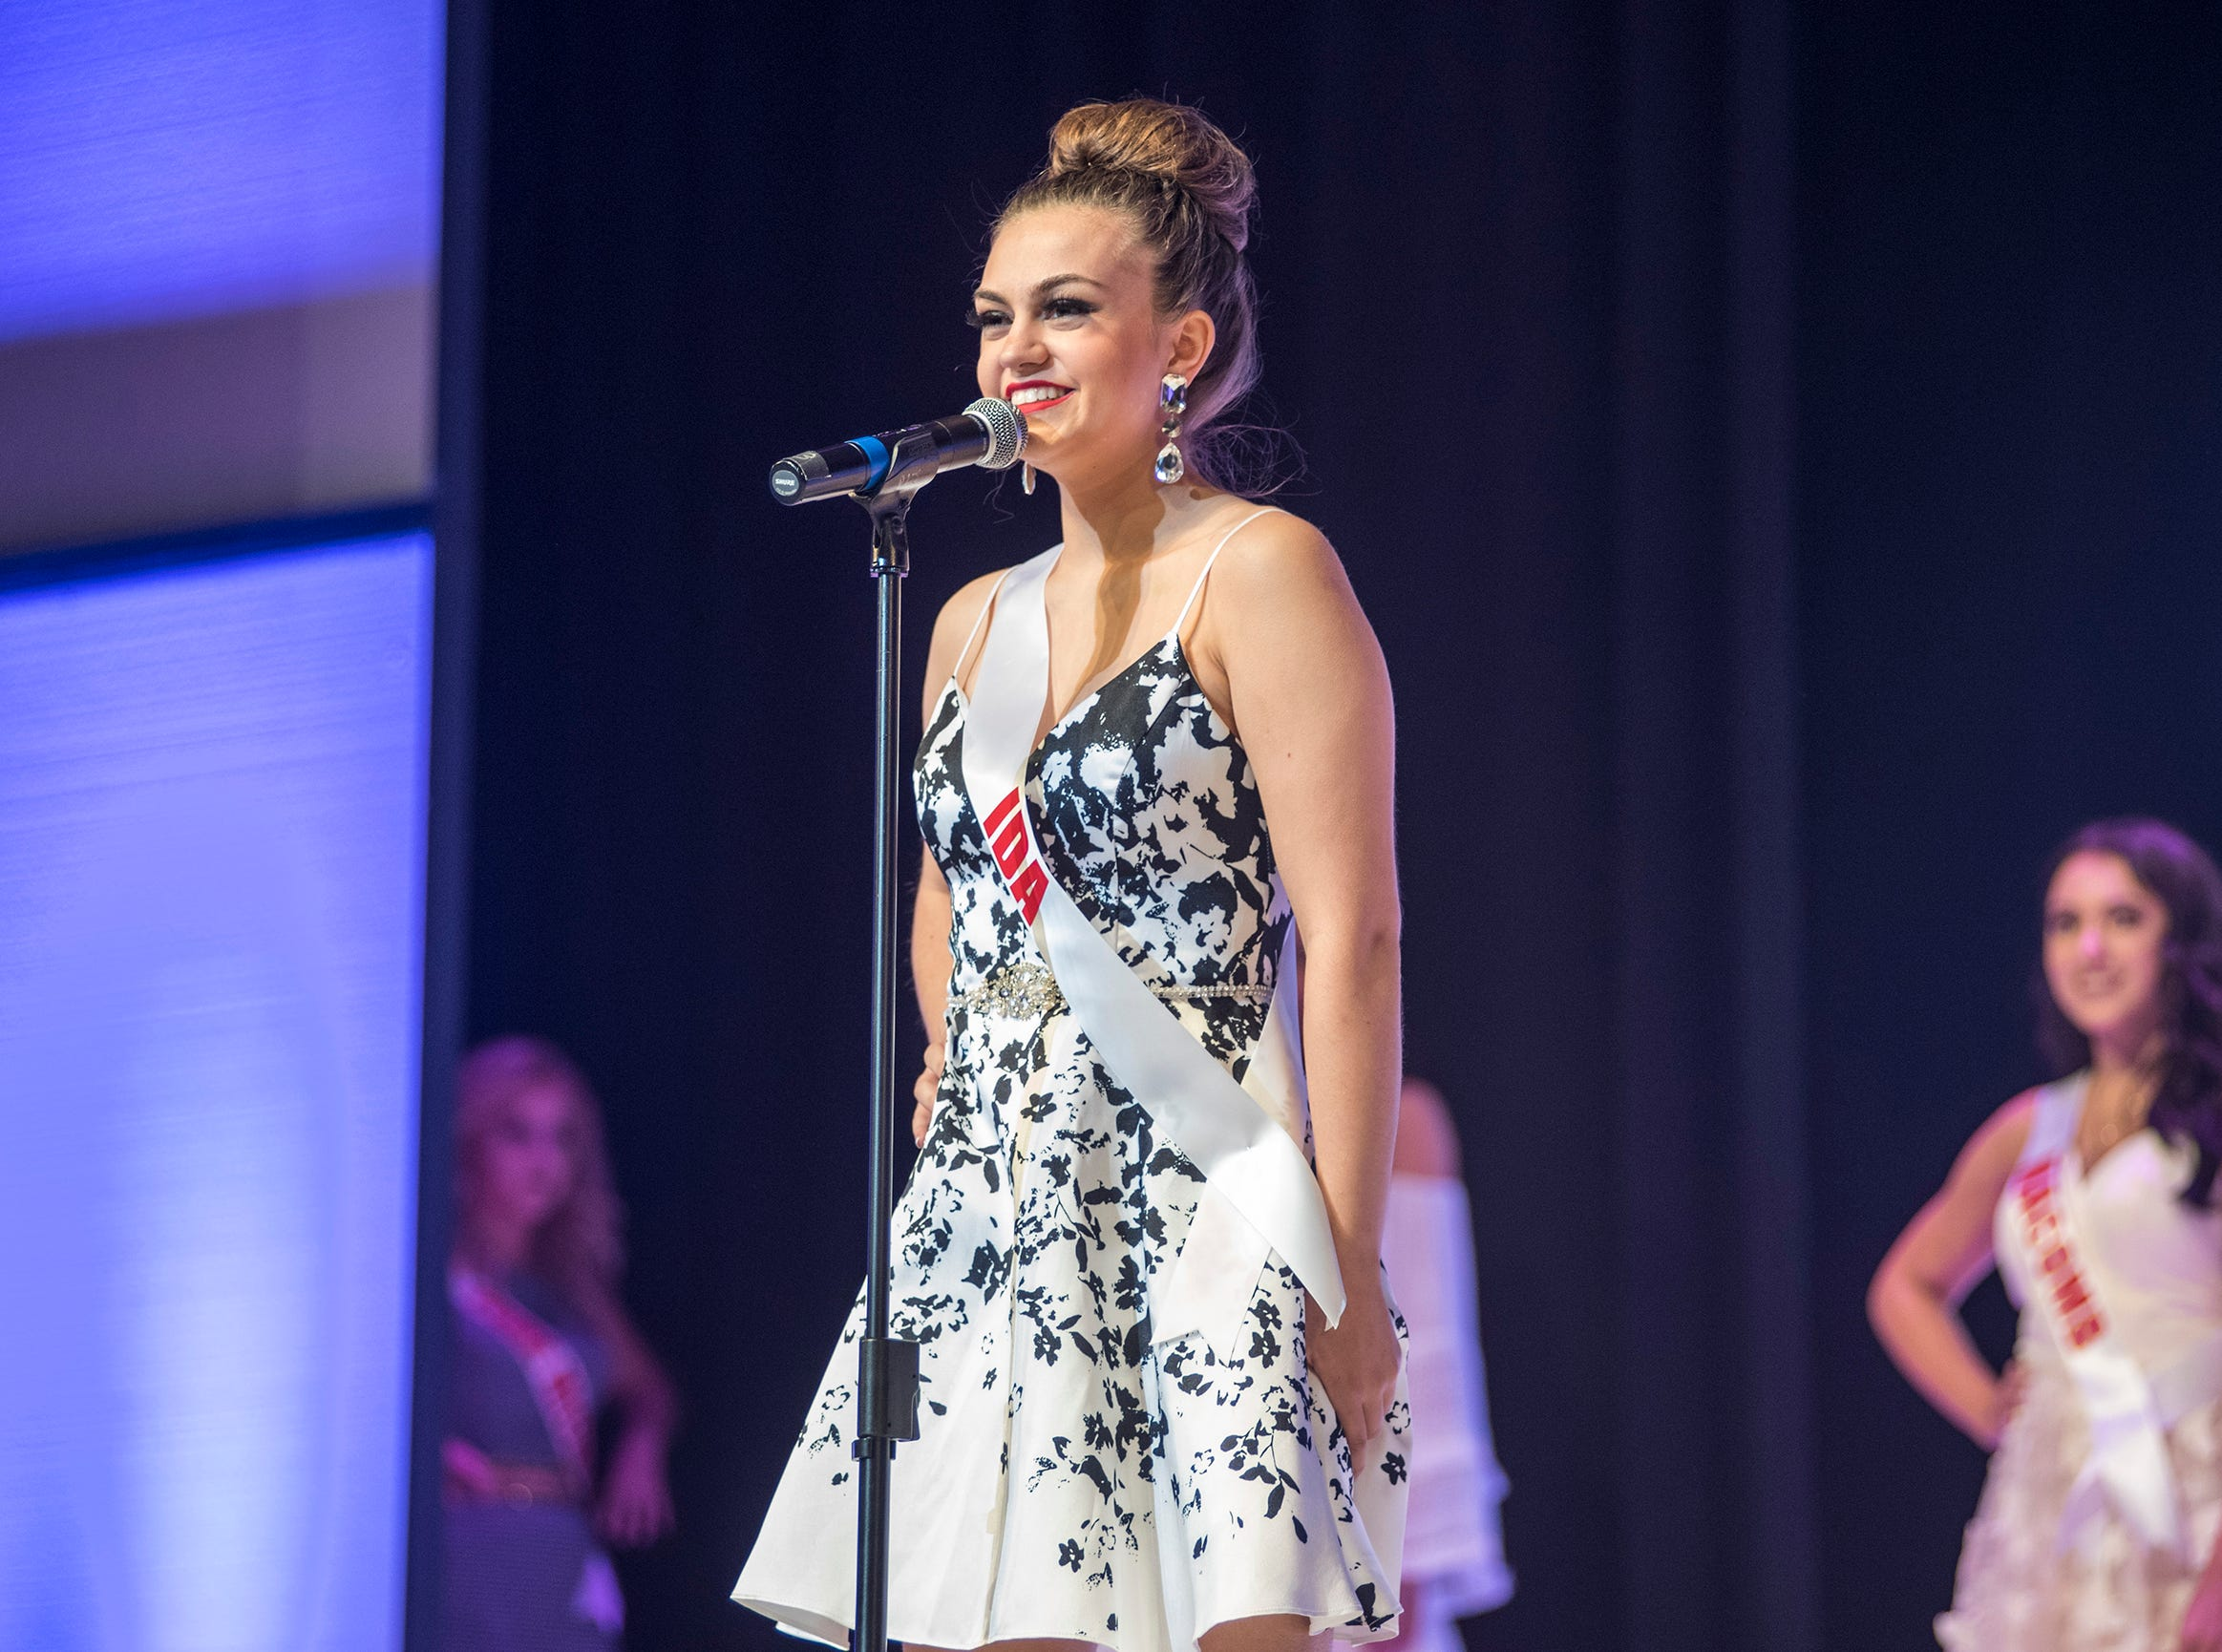 Miss Ida Teen Elizabeth Wirth introduces herself Saturday, Sept. 22, 2018 at the start of the Miss Michigan Teen USA competition at McMorran Theater.